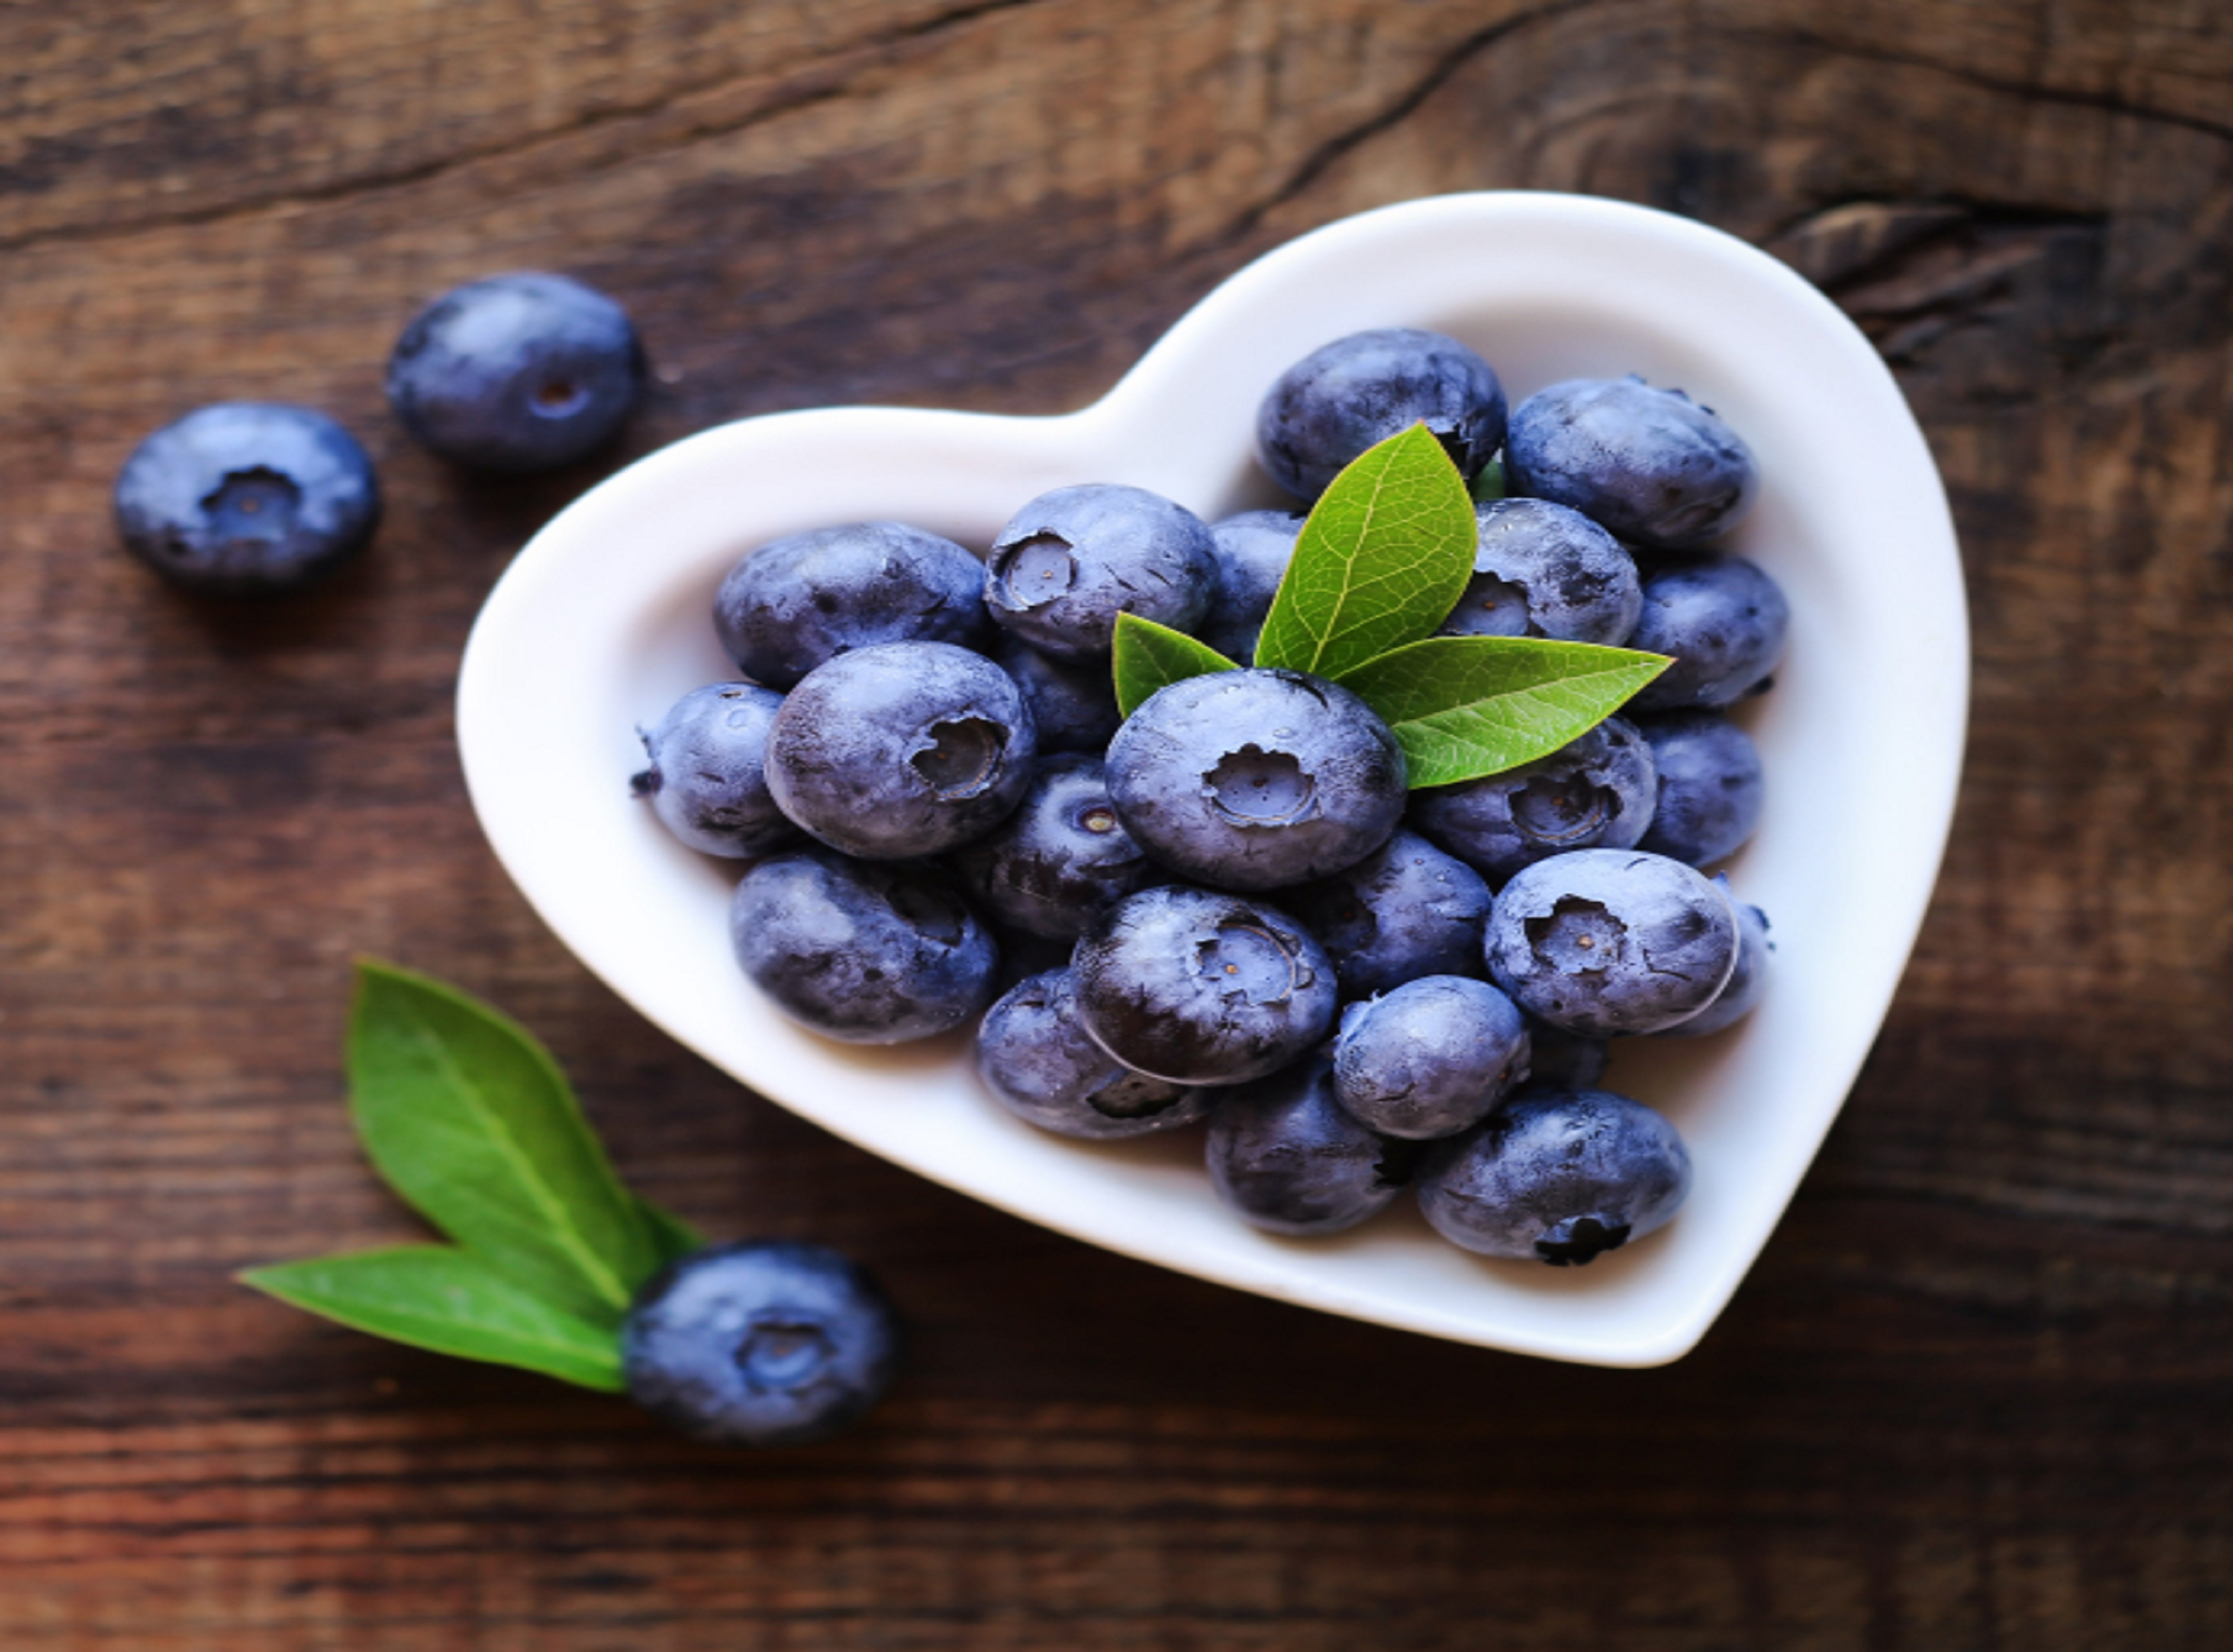 better foods for a better heart 15 heart-healthy foods to work into your diet a healthy diet can be good for your heart as well as your waistline advertising policy cleveland clinic is a non-profit academic medical center.